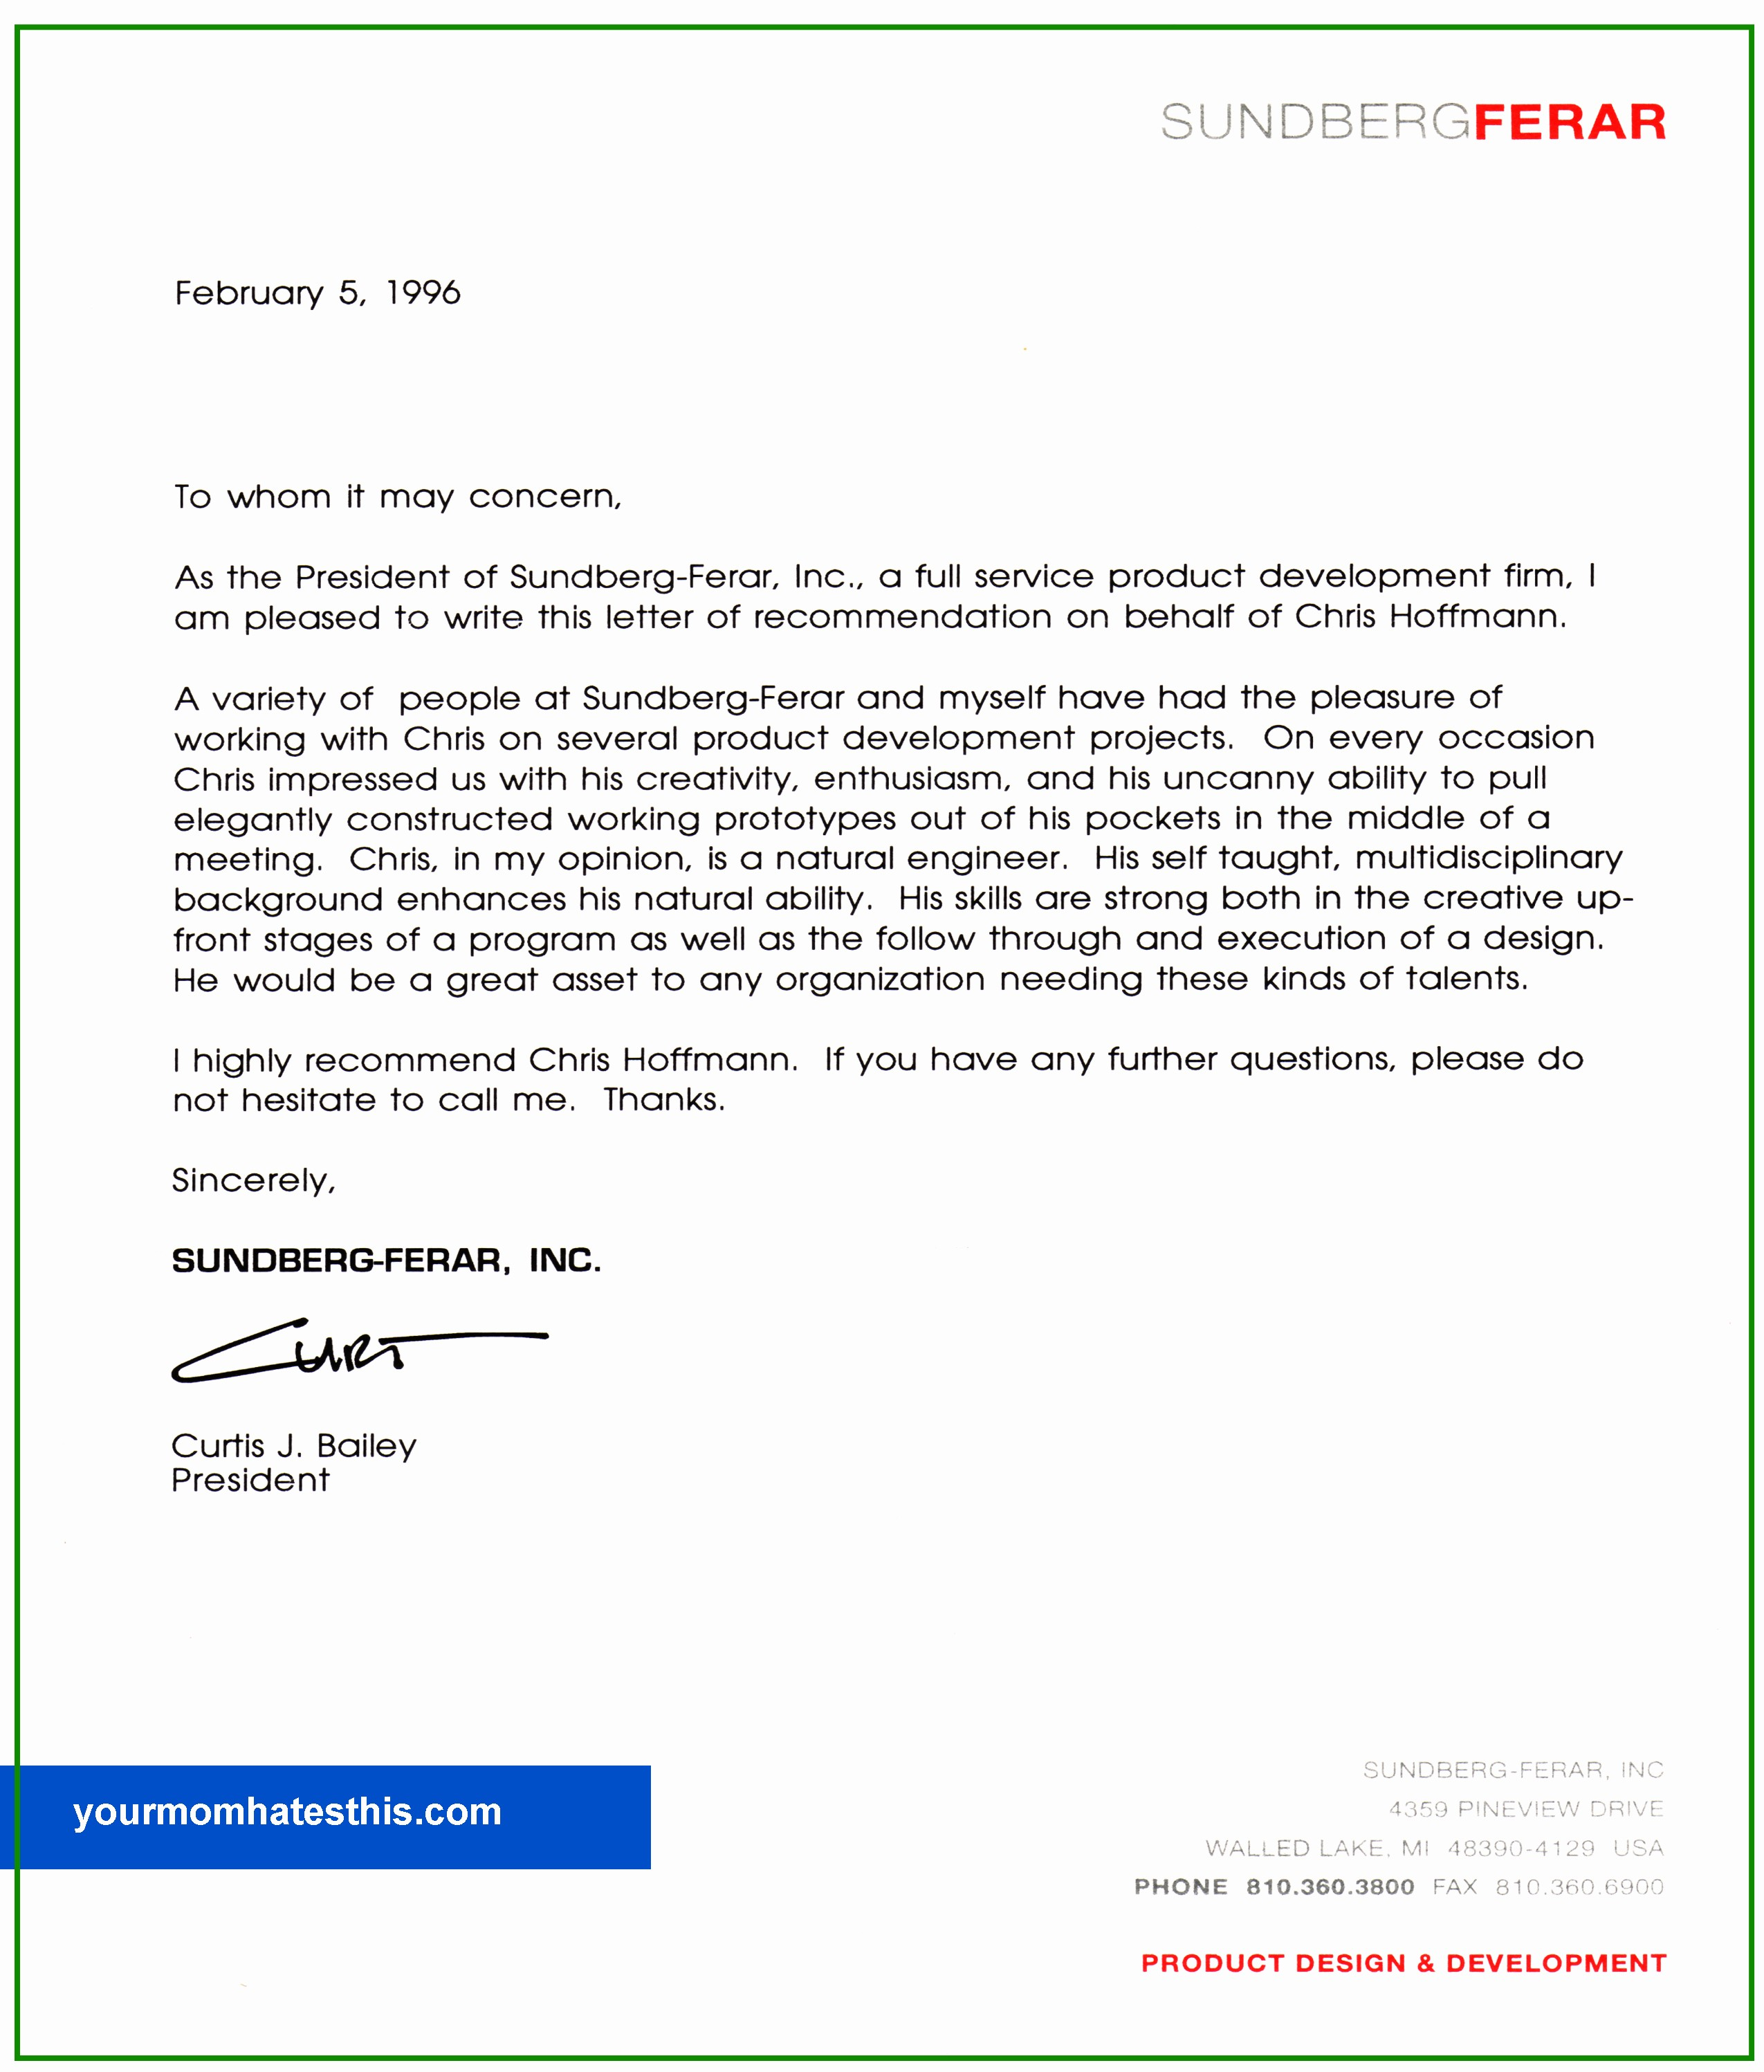 Letters Of Recommendation format Samples Awesome Download Letter Of Re Mendation Samples